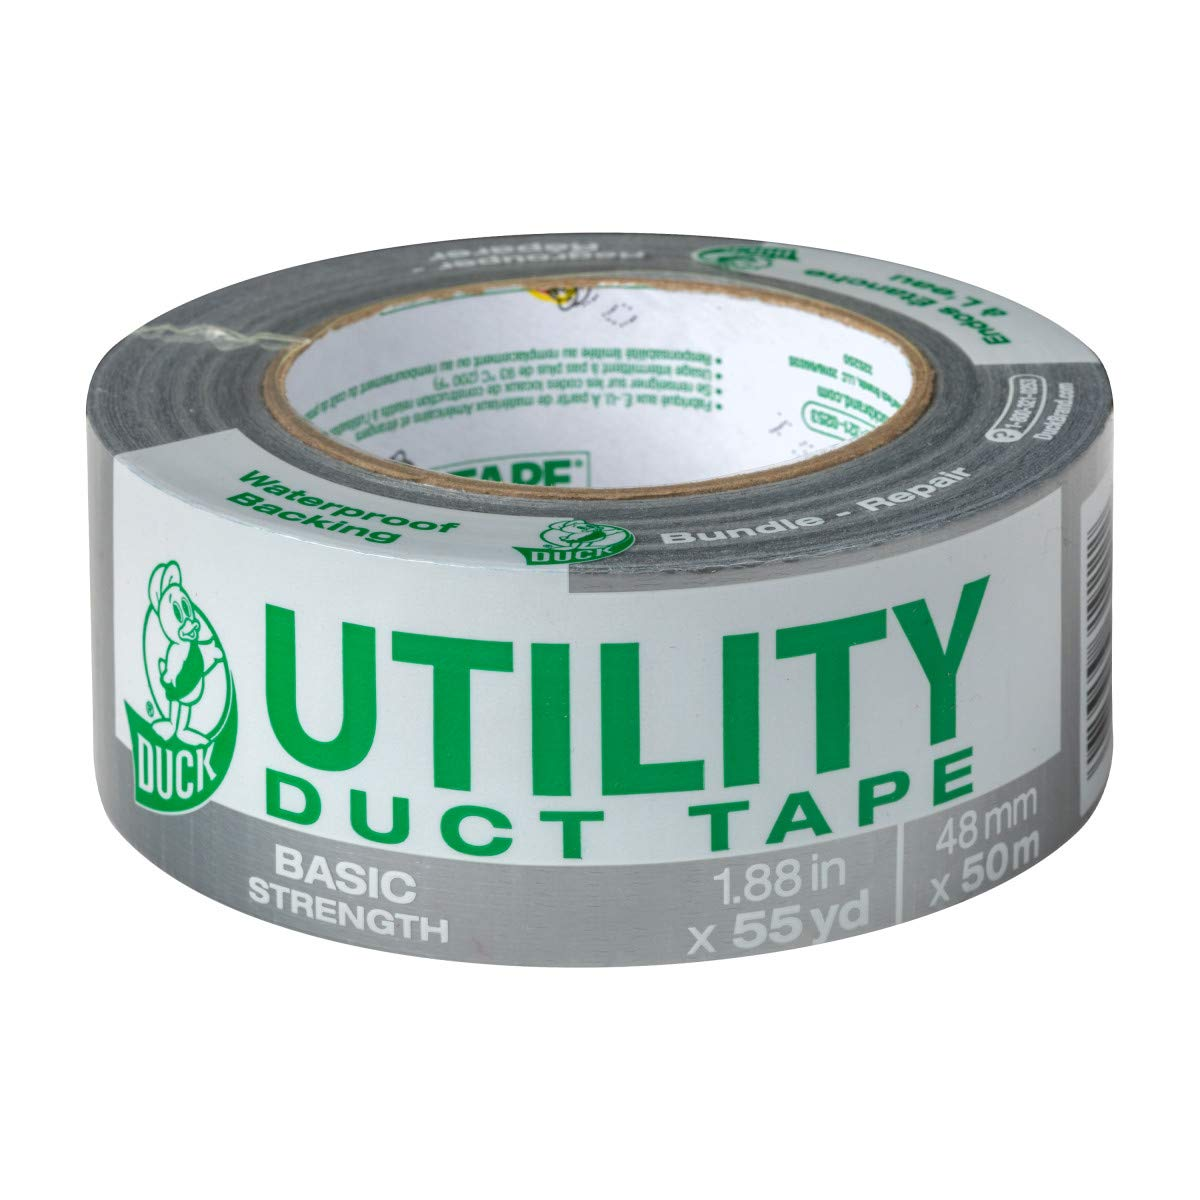 Duck Tape Brand  1118393 Utility Duct Tape Basic Strength, 1-Pack 1.88 Inch x 55 Yard Silver